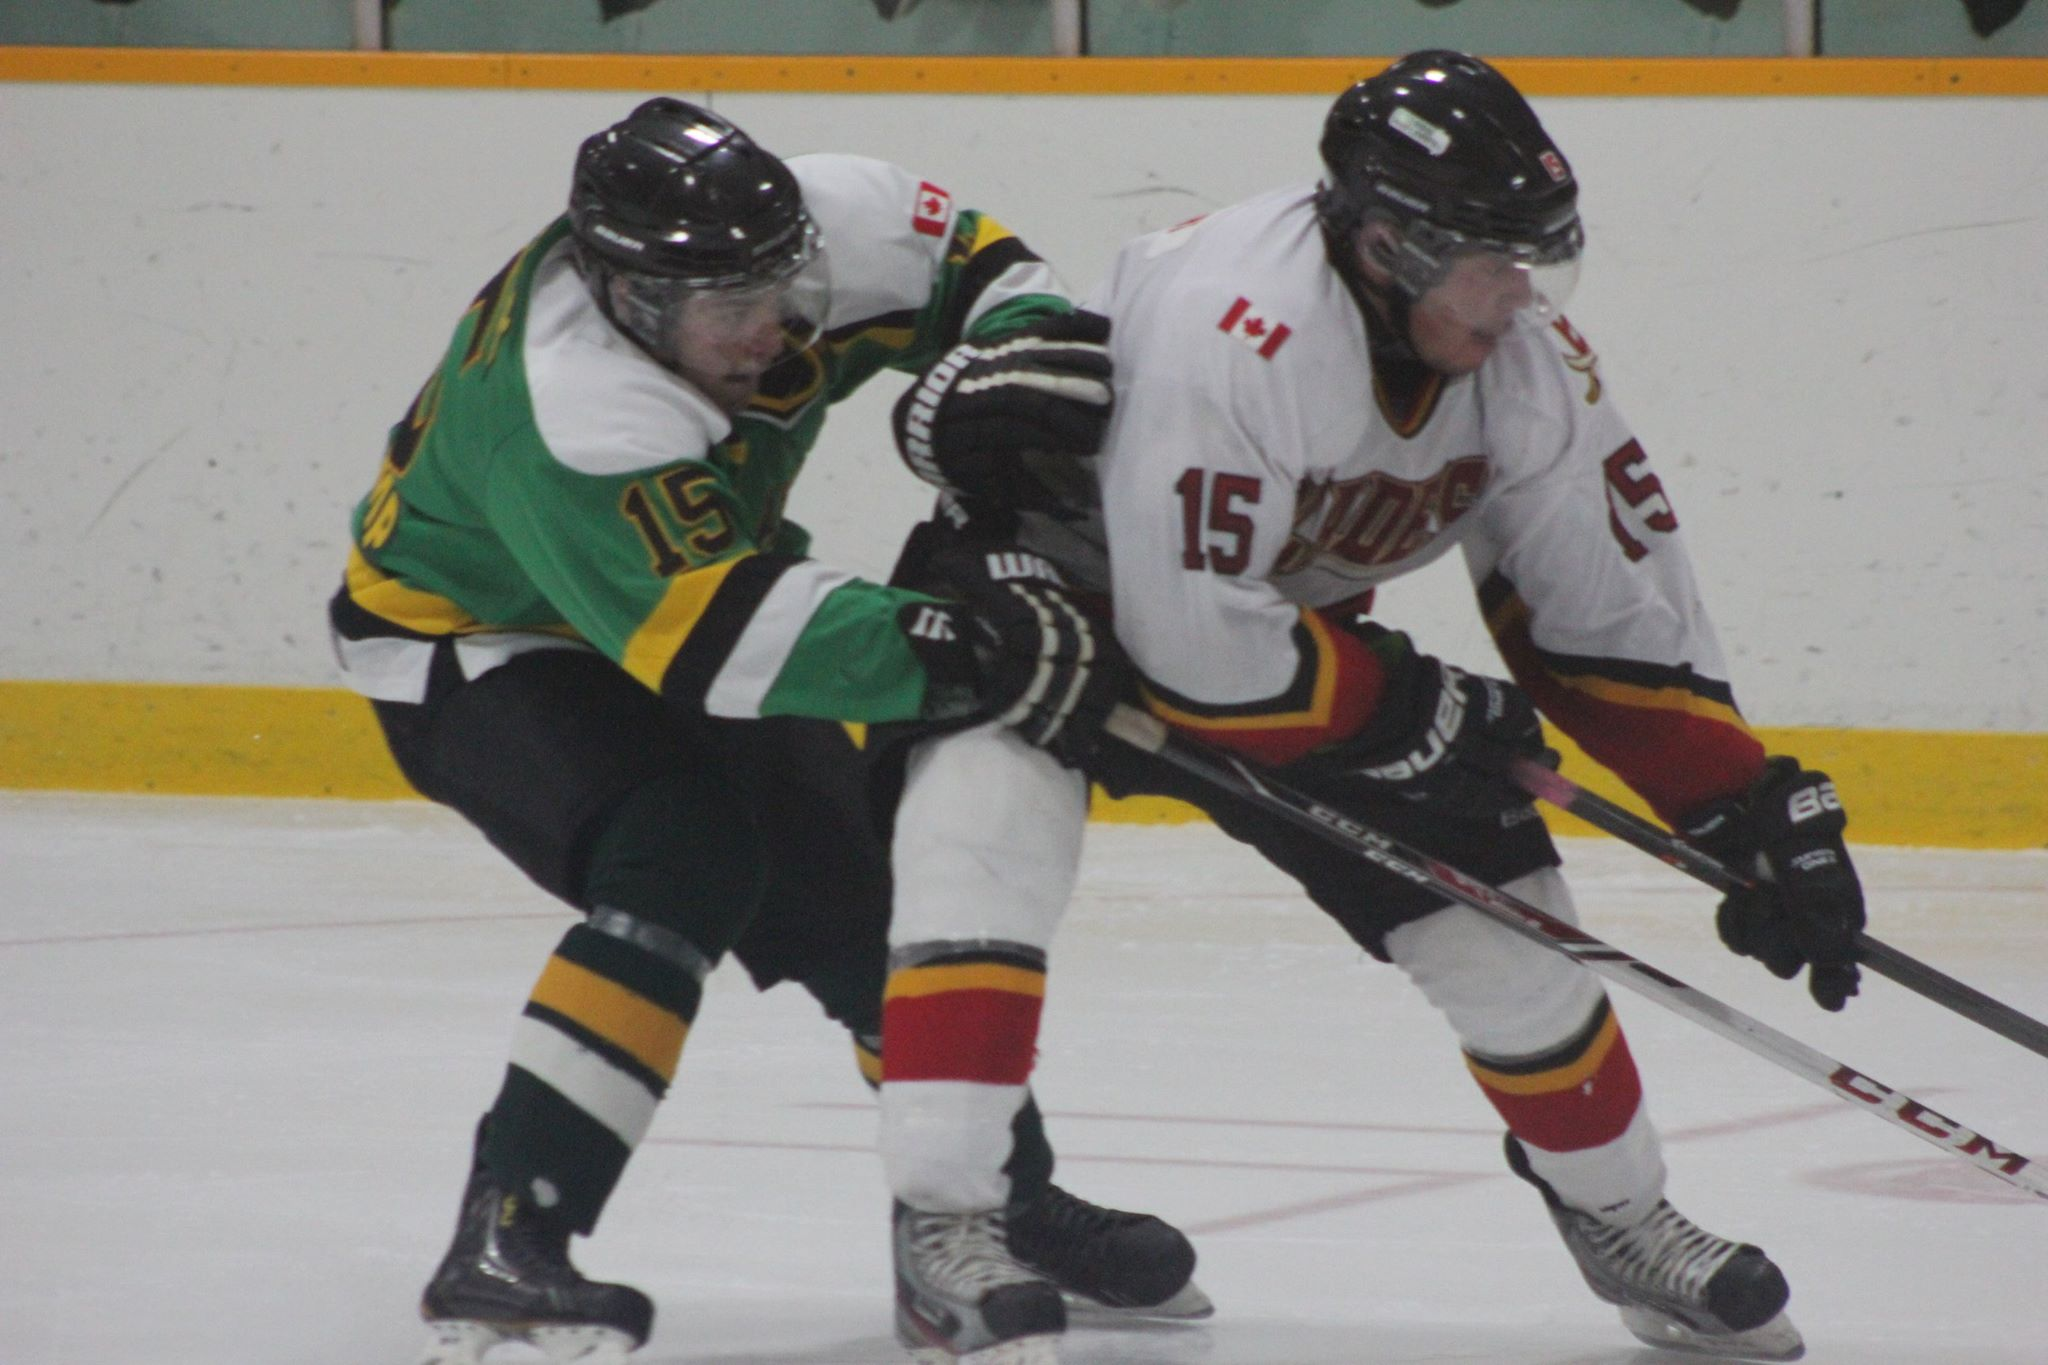 The Wallaceburg Lakers take on the Blenheim Blades on November 12, 2014. (Photo courtesy of Jocelyn McLaughlin)